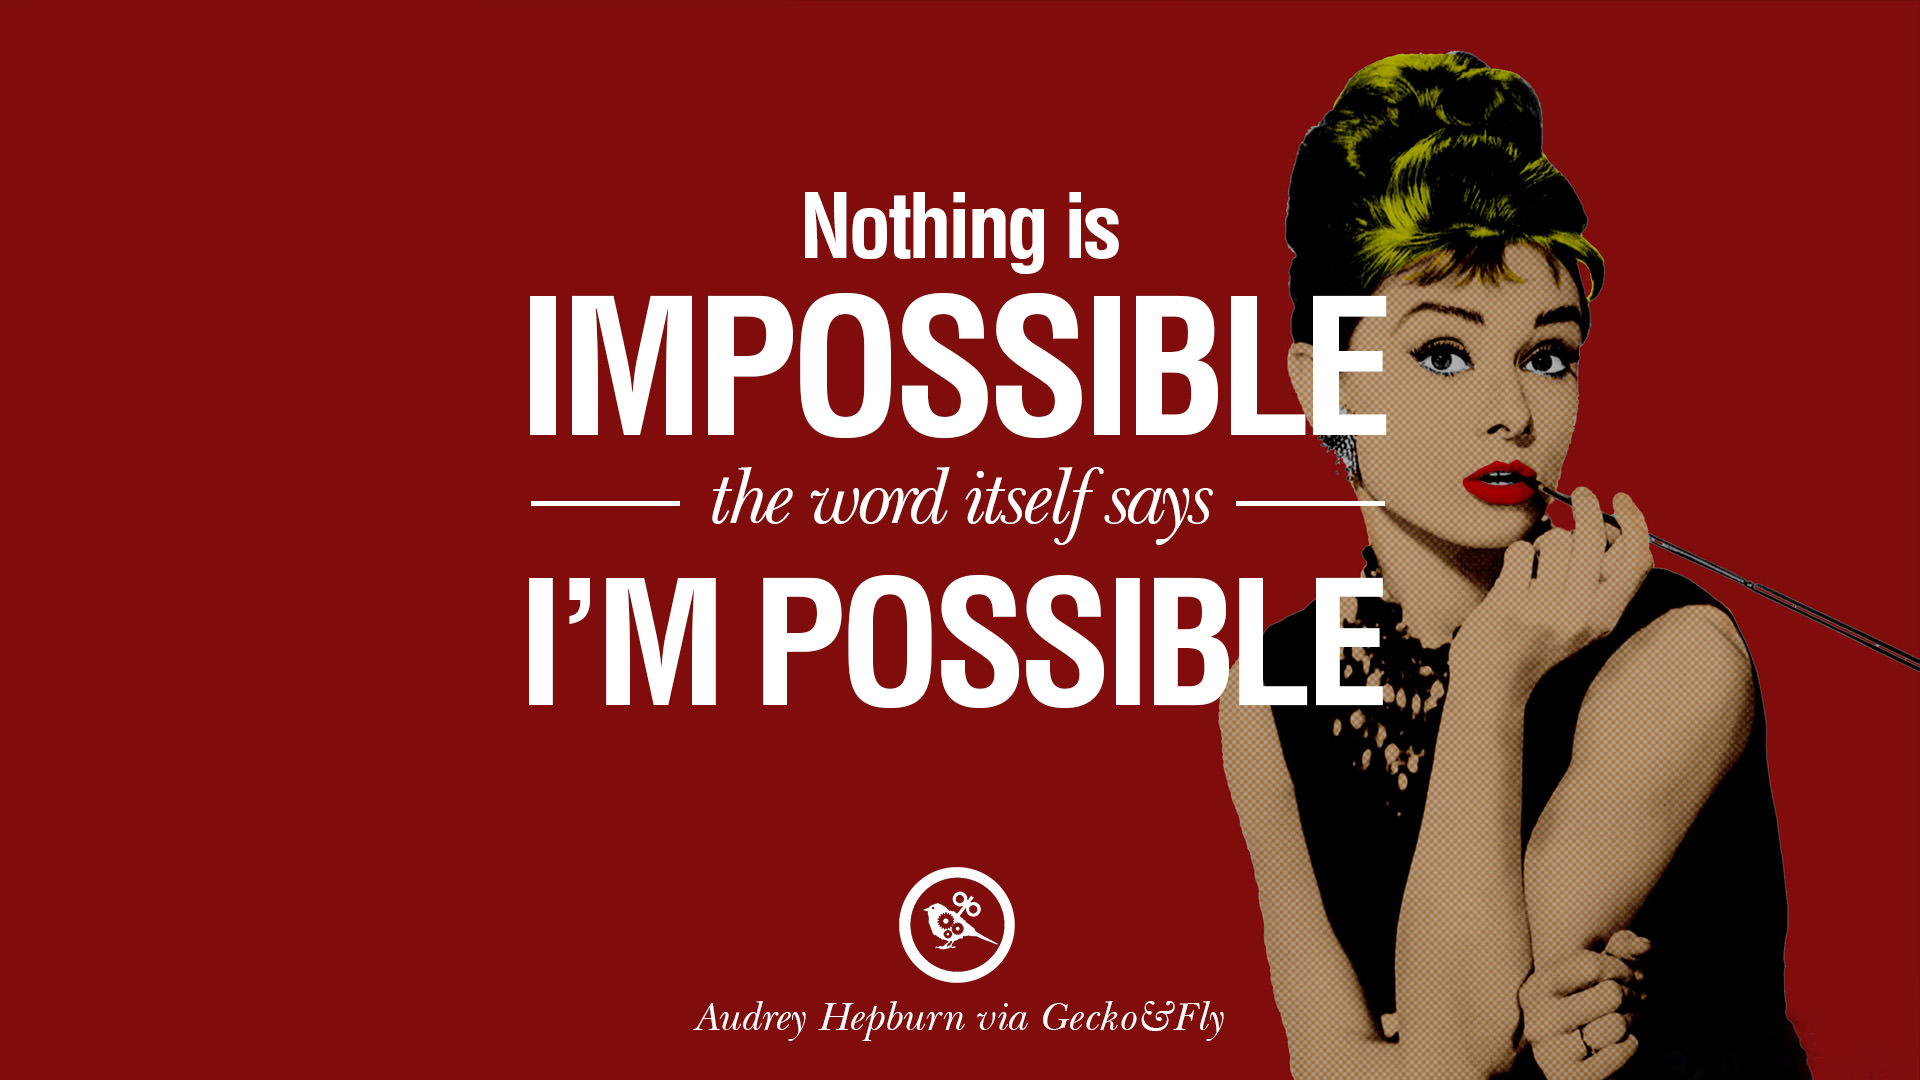 10 Fashionable Audrey Hepburn Quotes On Life Fashion Beauty And Woman